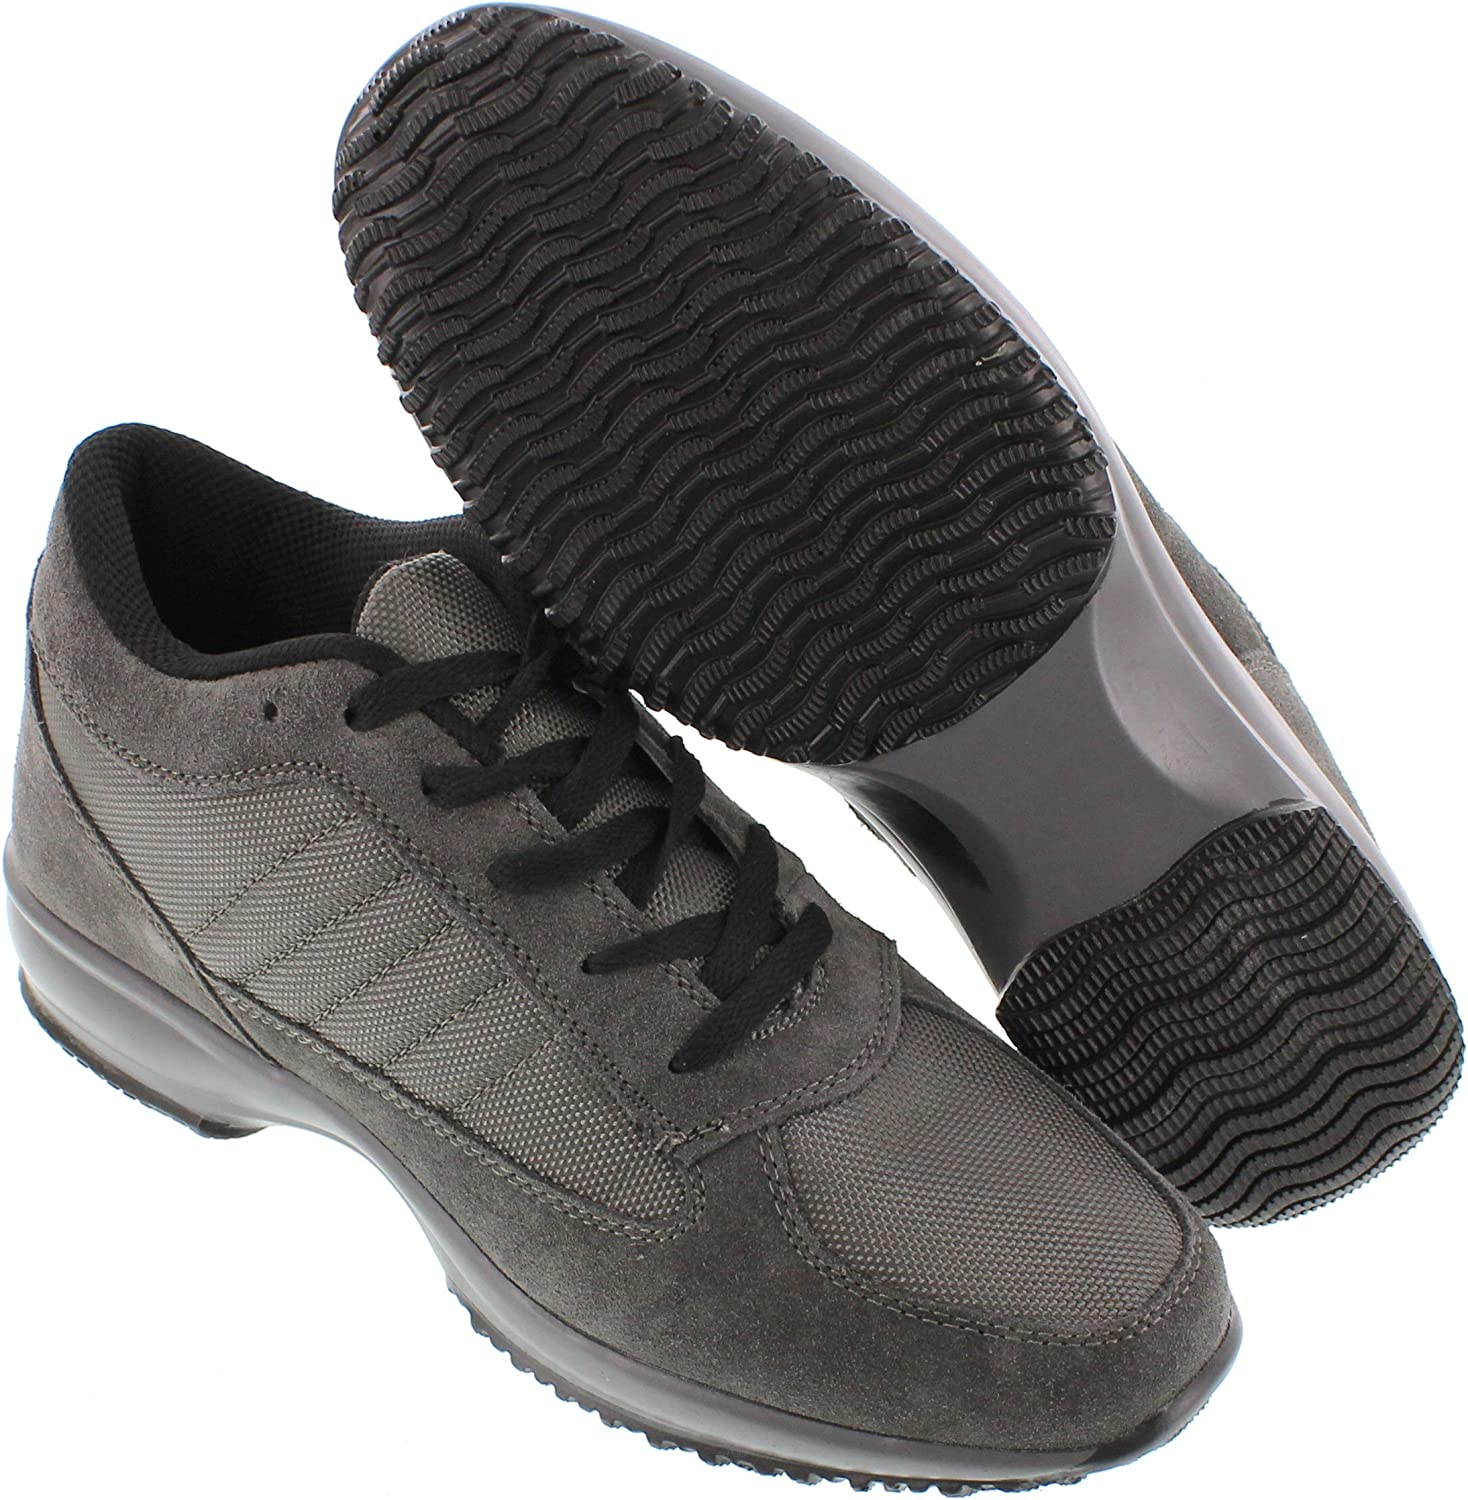 Calden Mens Invisible Height Increasing Elevator Shoes 3 Inches Taller Dark Grey Suede Leather//Mesh Lightweight Trainer Sneakers FD013